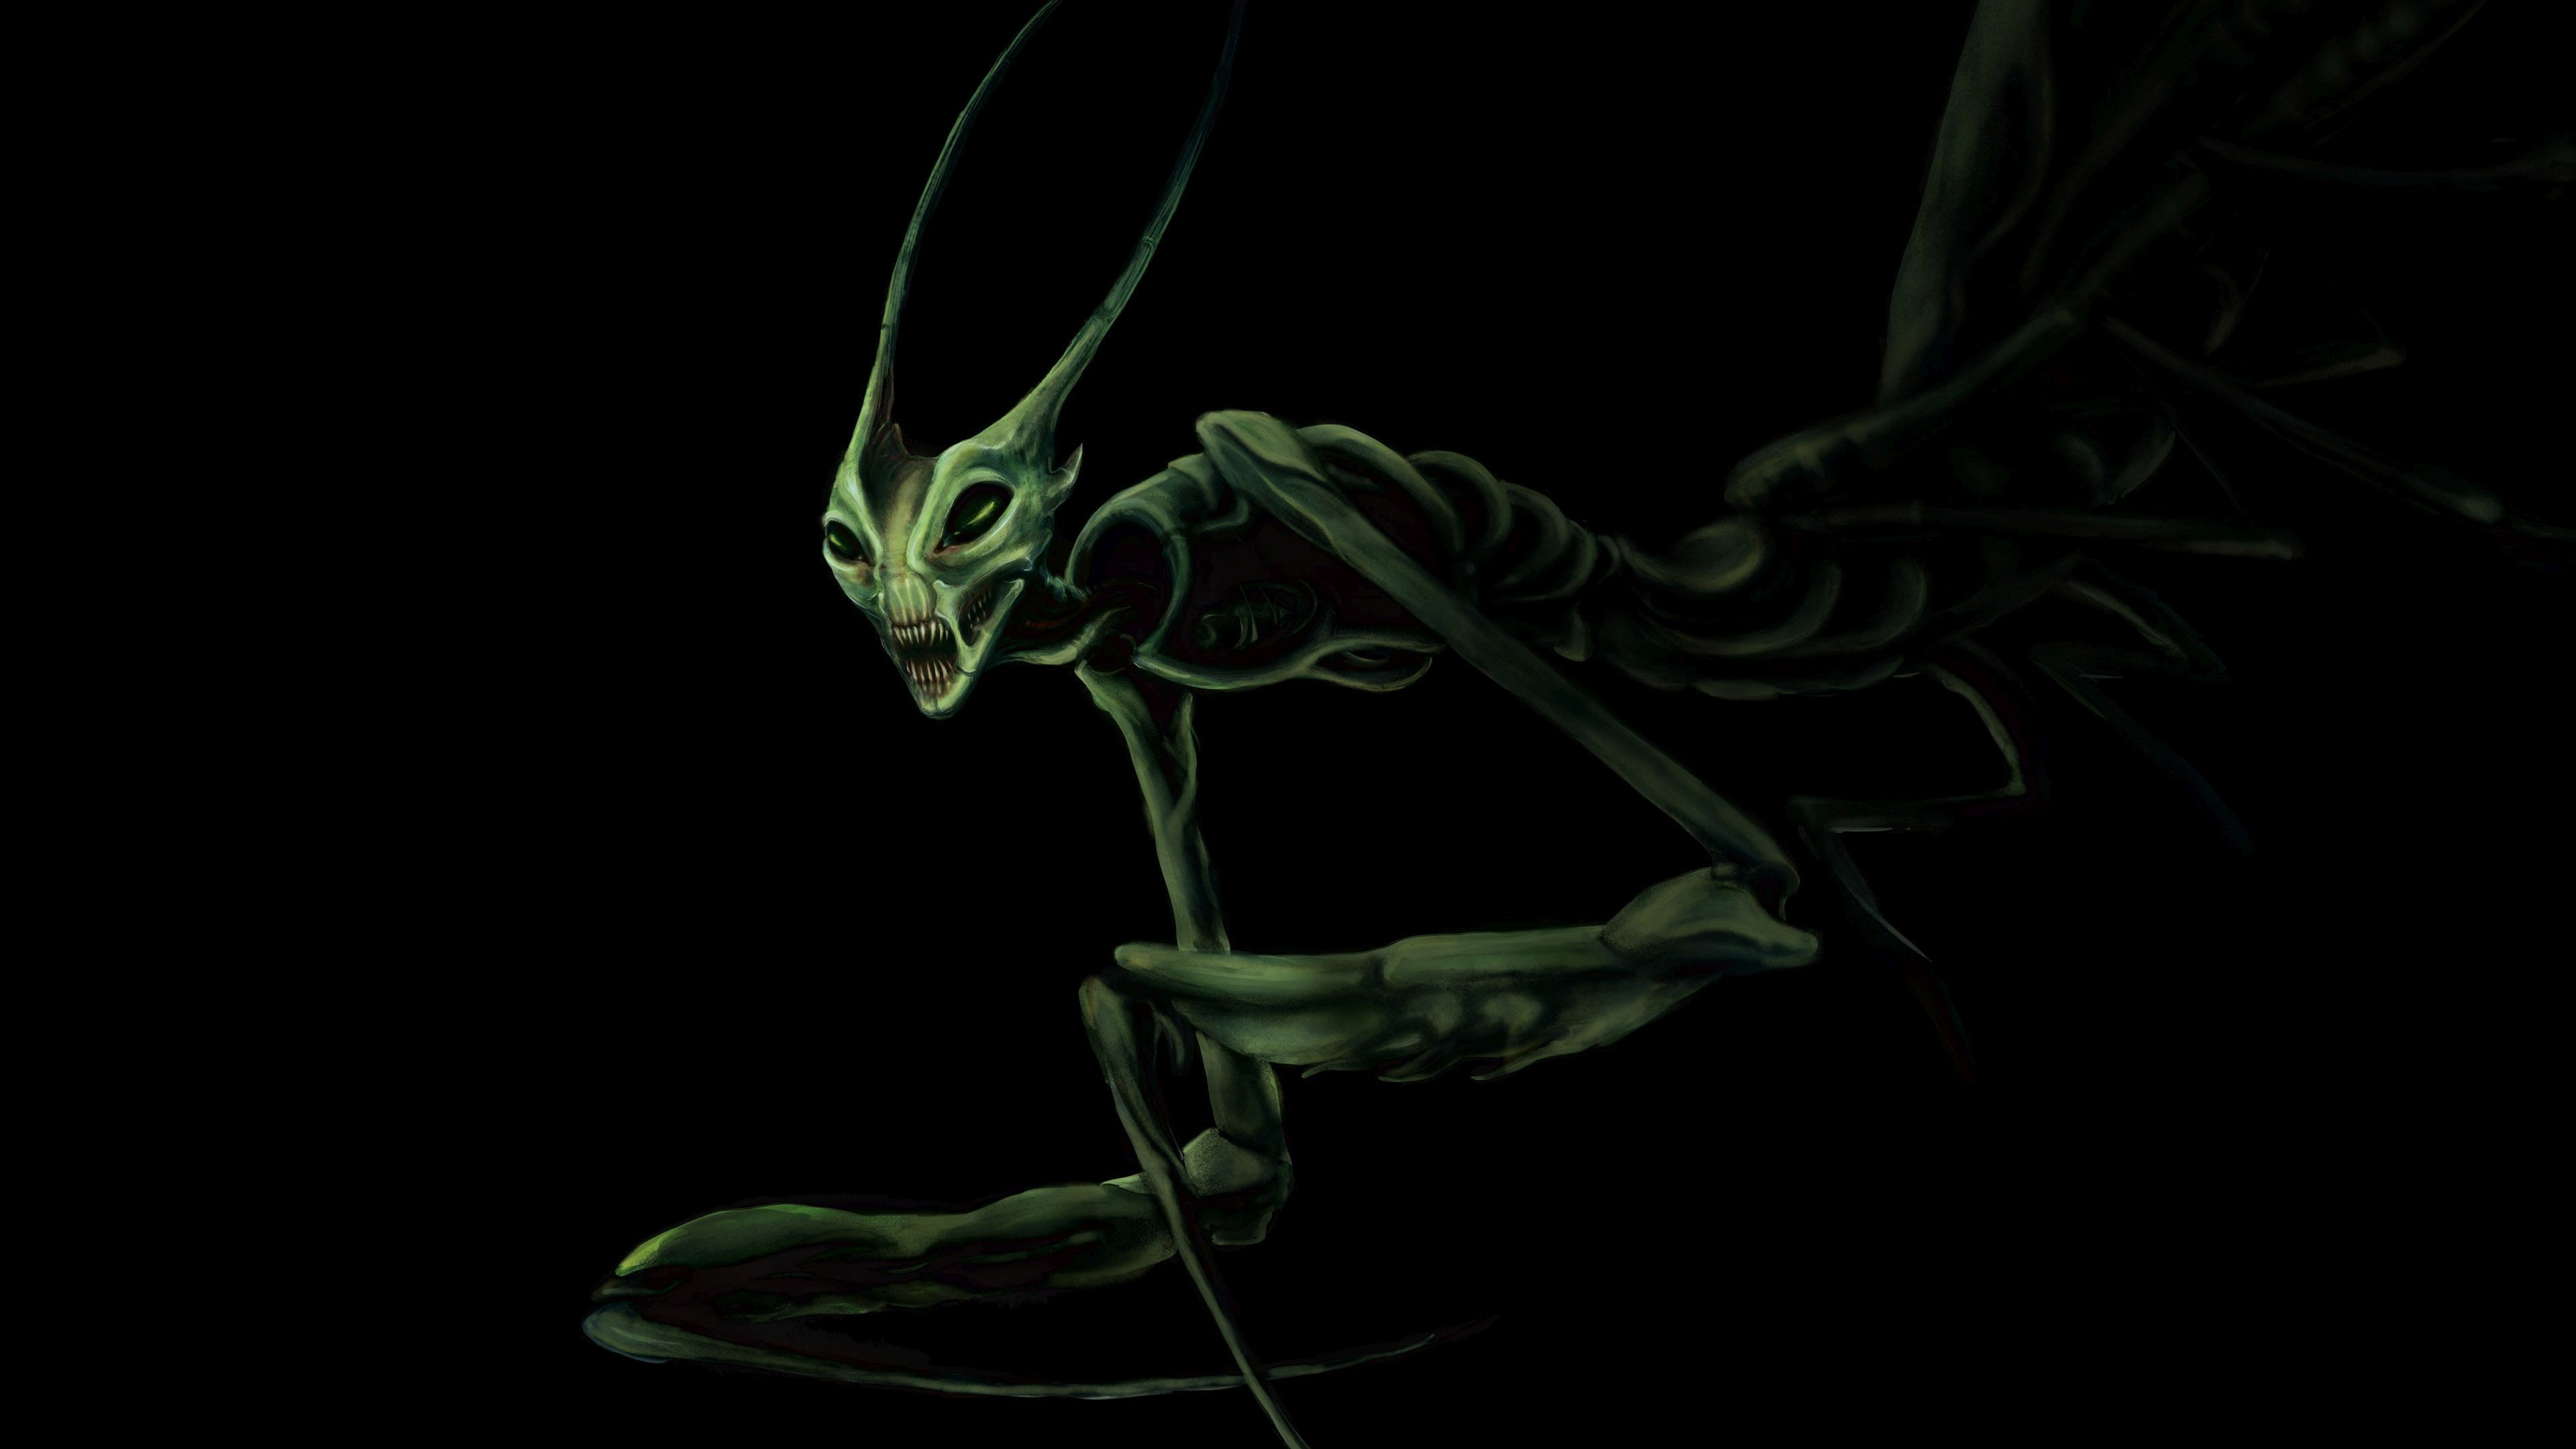 Res: 3840x2160, Praying Mantis Wallpaper 80